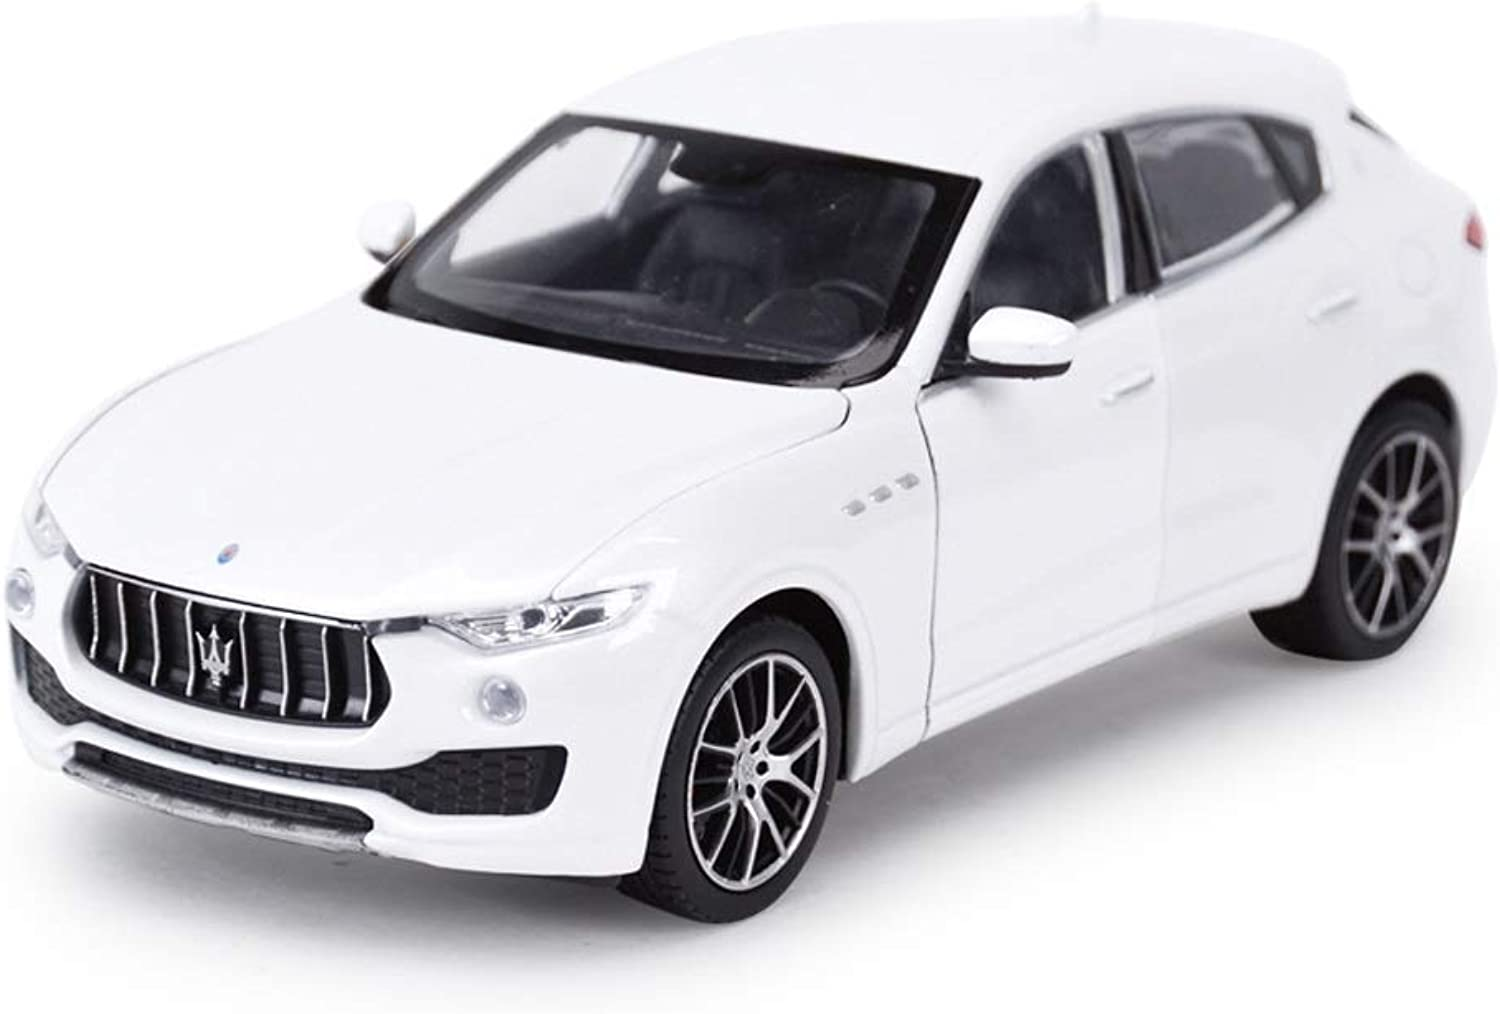 Maisto 1 24 Scale Maserati Levante Model Diecast Vehicles Cars Models Toy For Kids Gift Home Collection Decorative Scale Model Simulation Vehicle ( color   White )